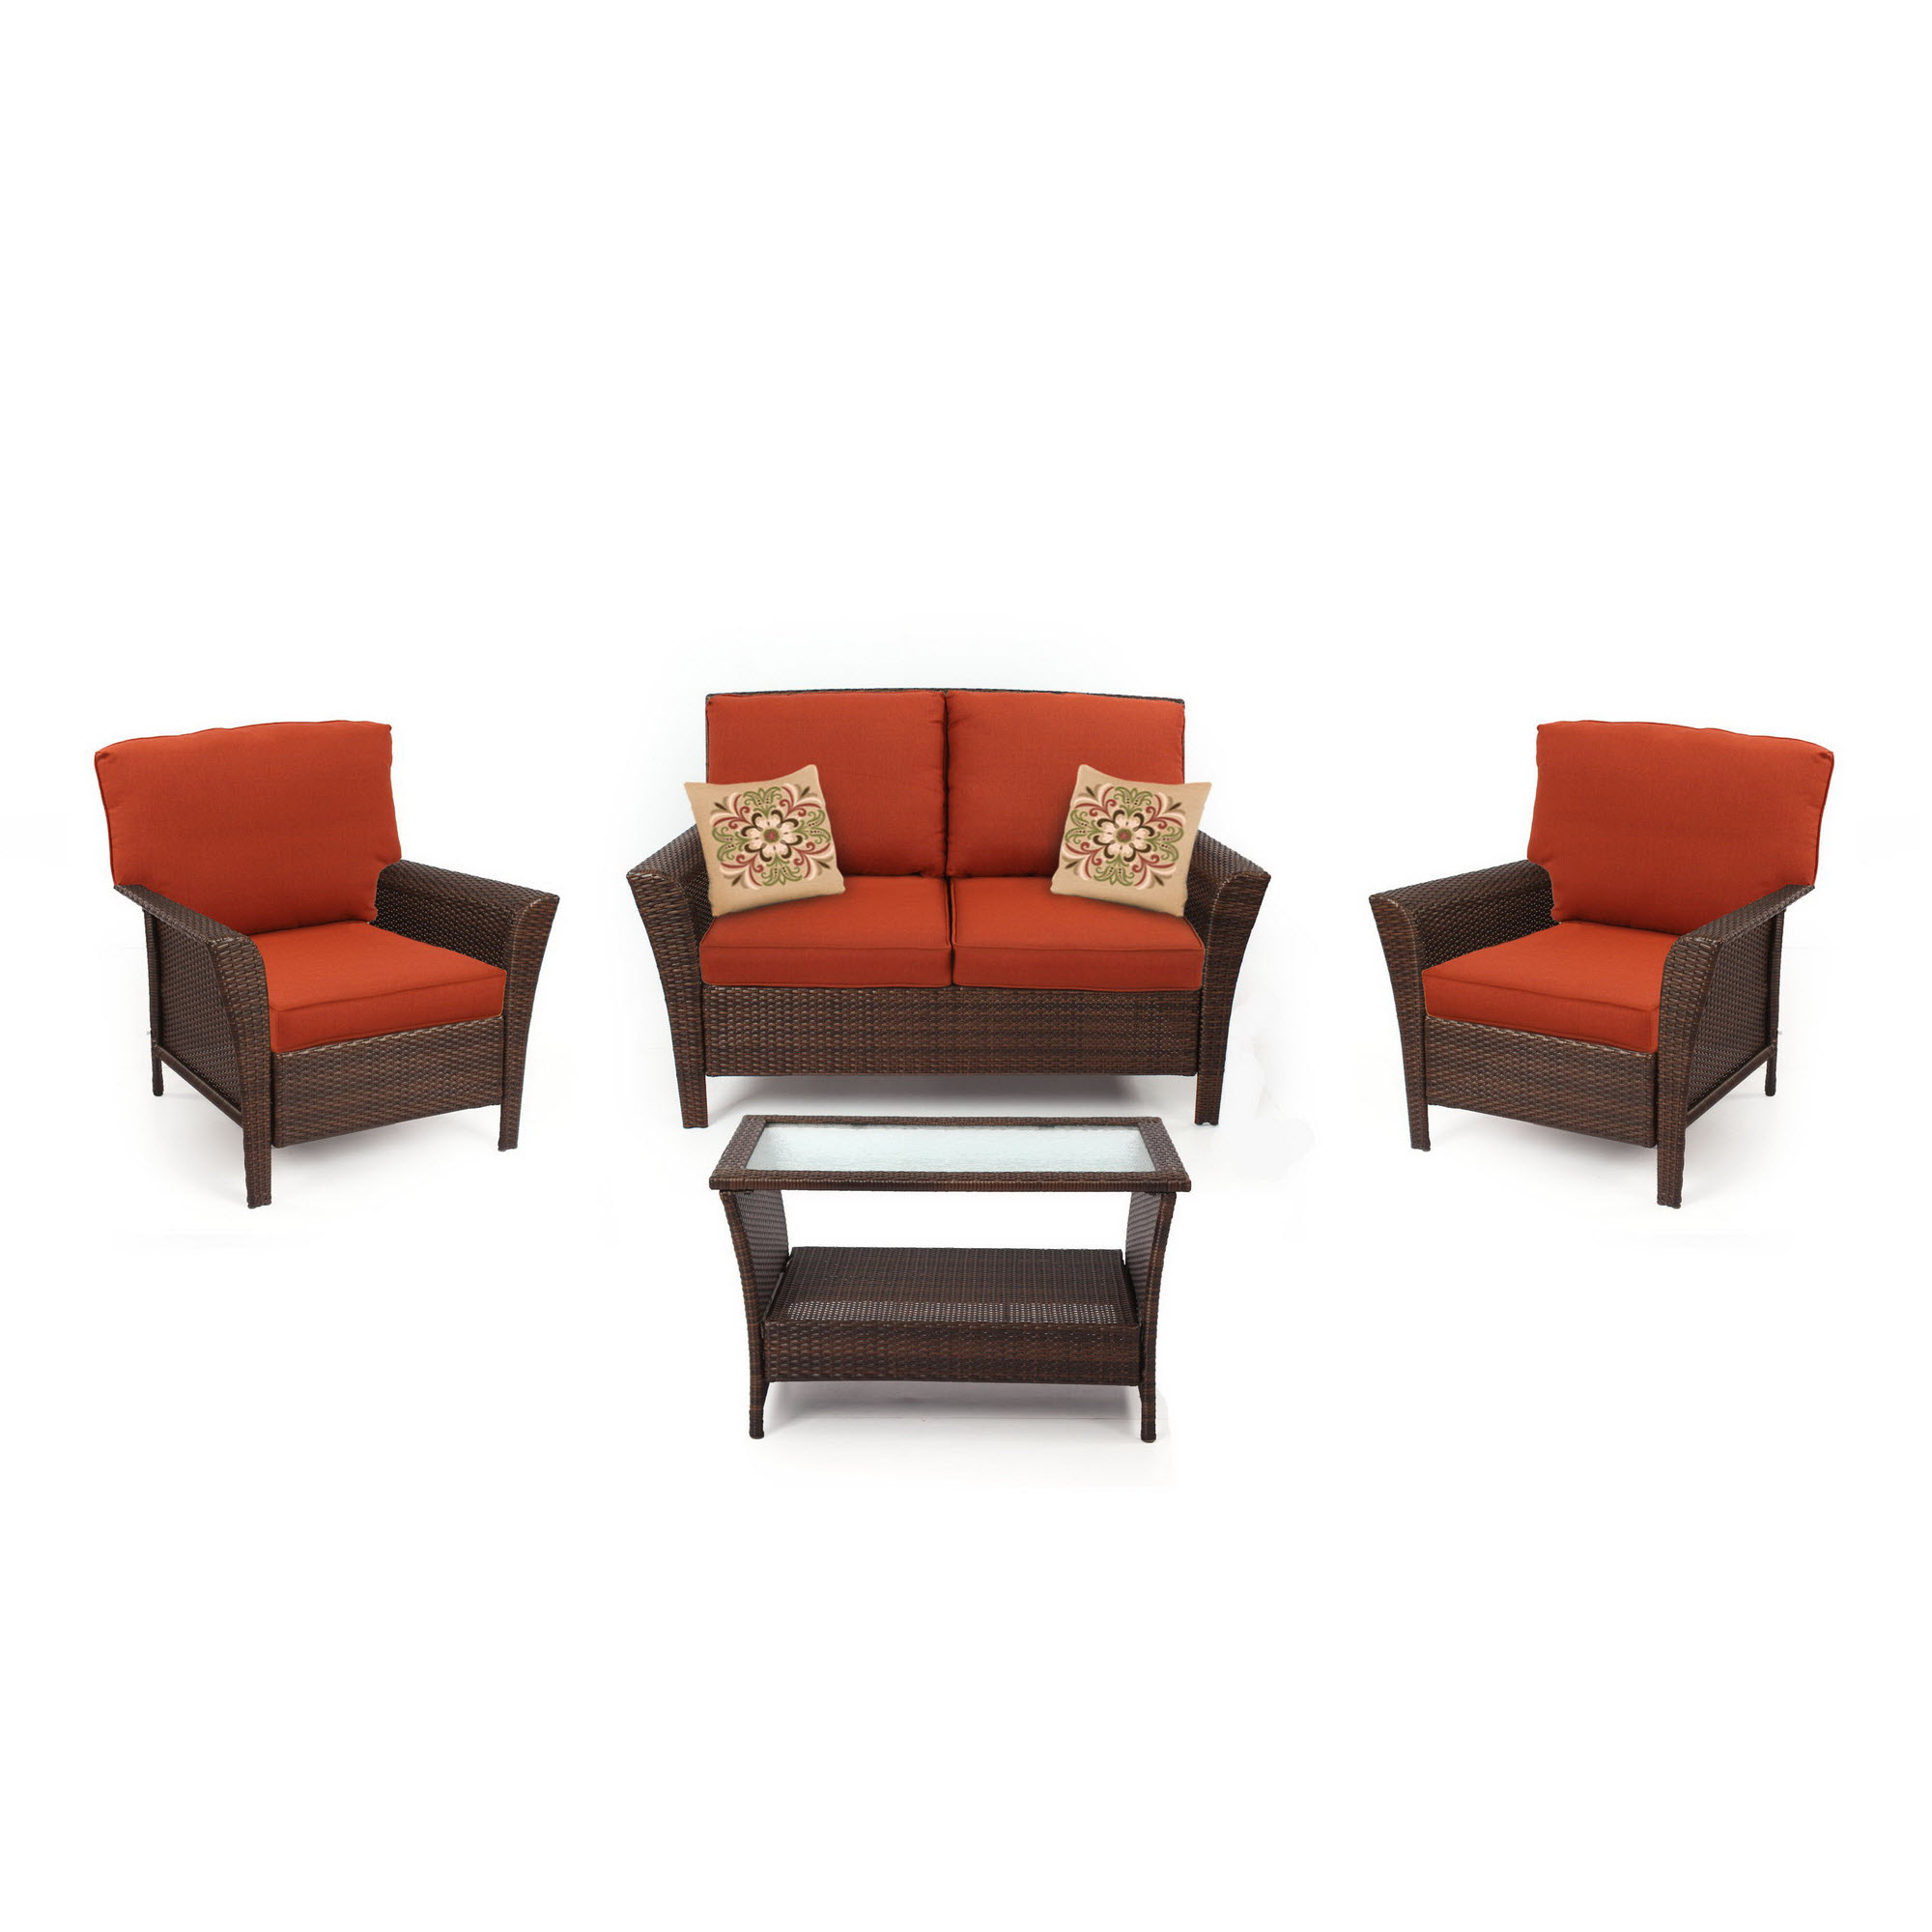 OUTDOOR TY PENNINGTON STYLE PARKSIDE DEEP SEATING SET